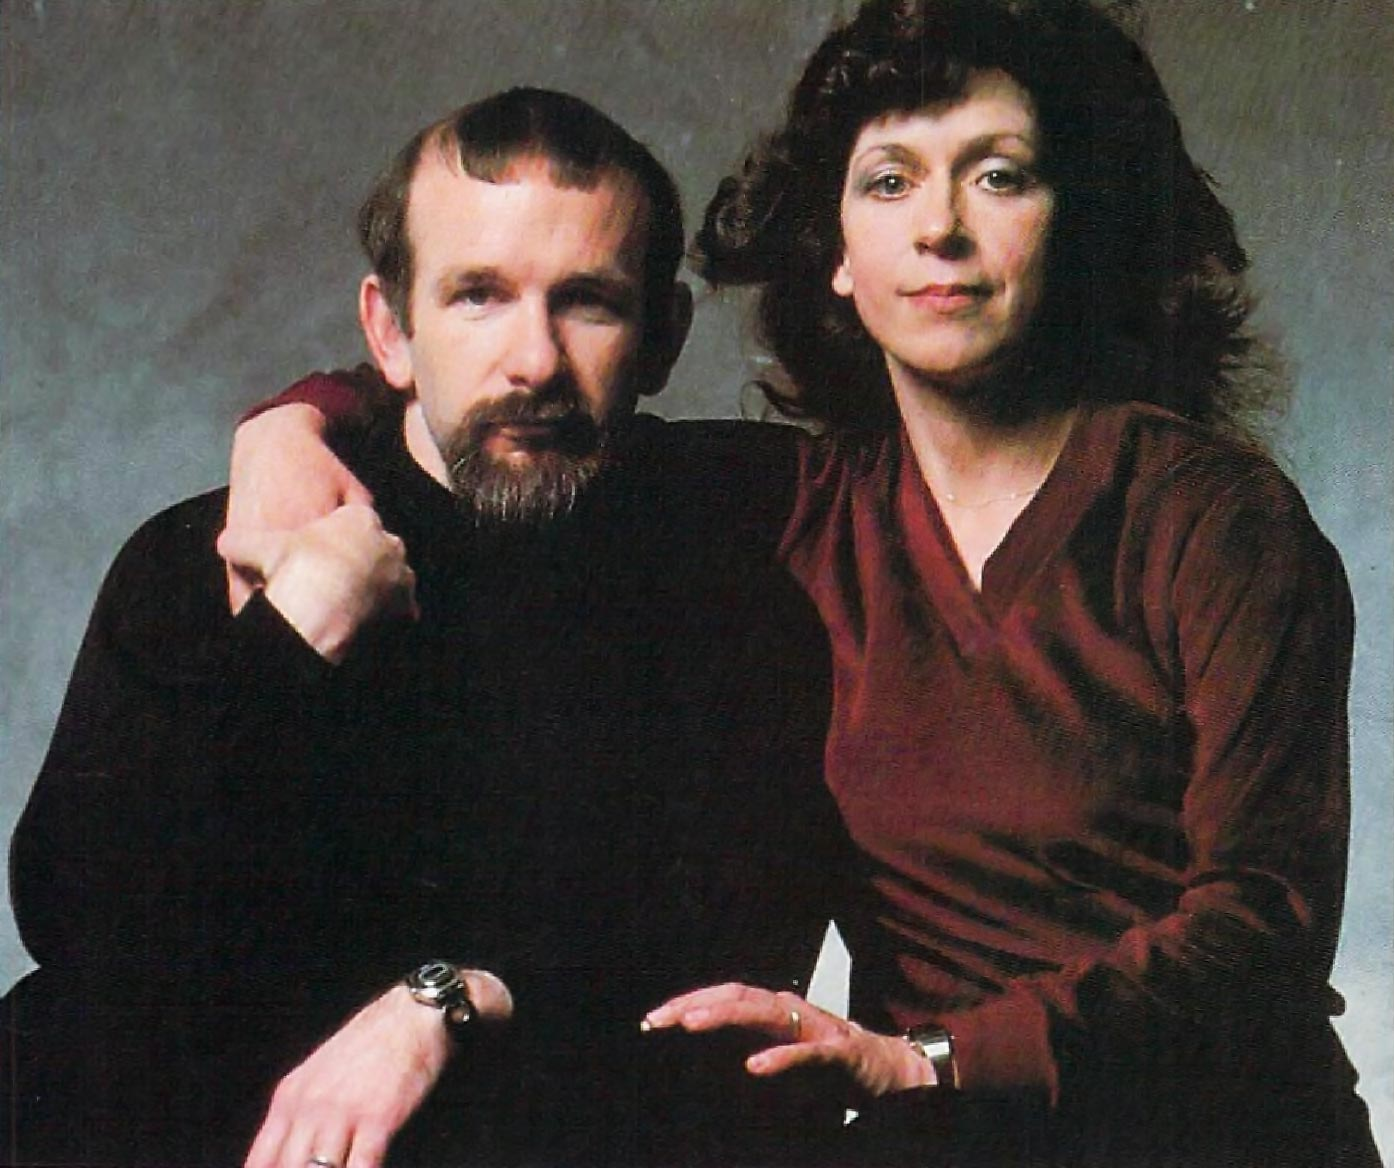 Jon Freeman and Anne Westfall, computer game designers for Epyx and Electronic Arts